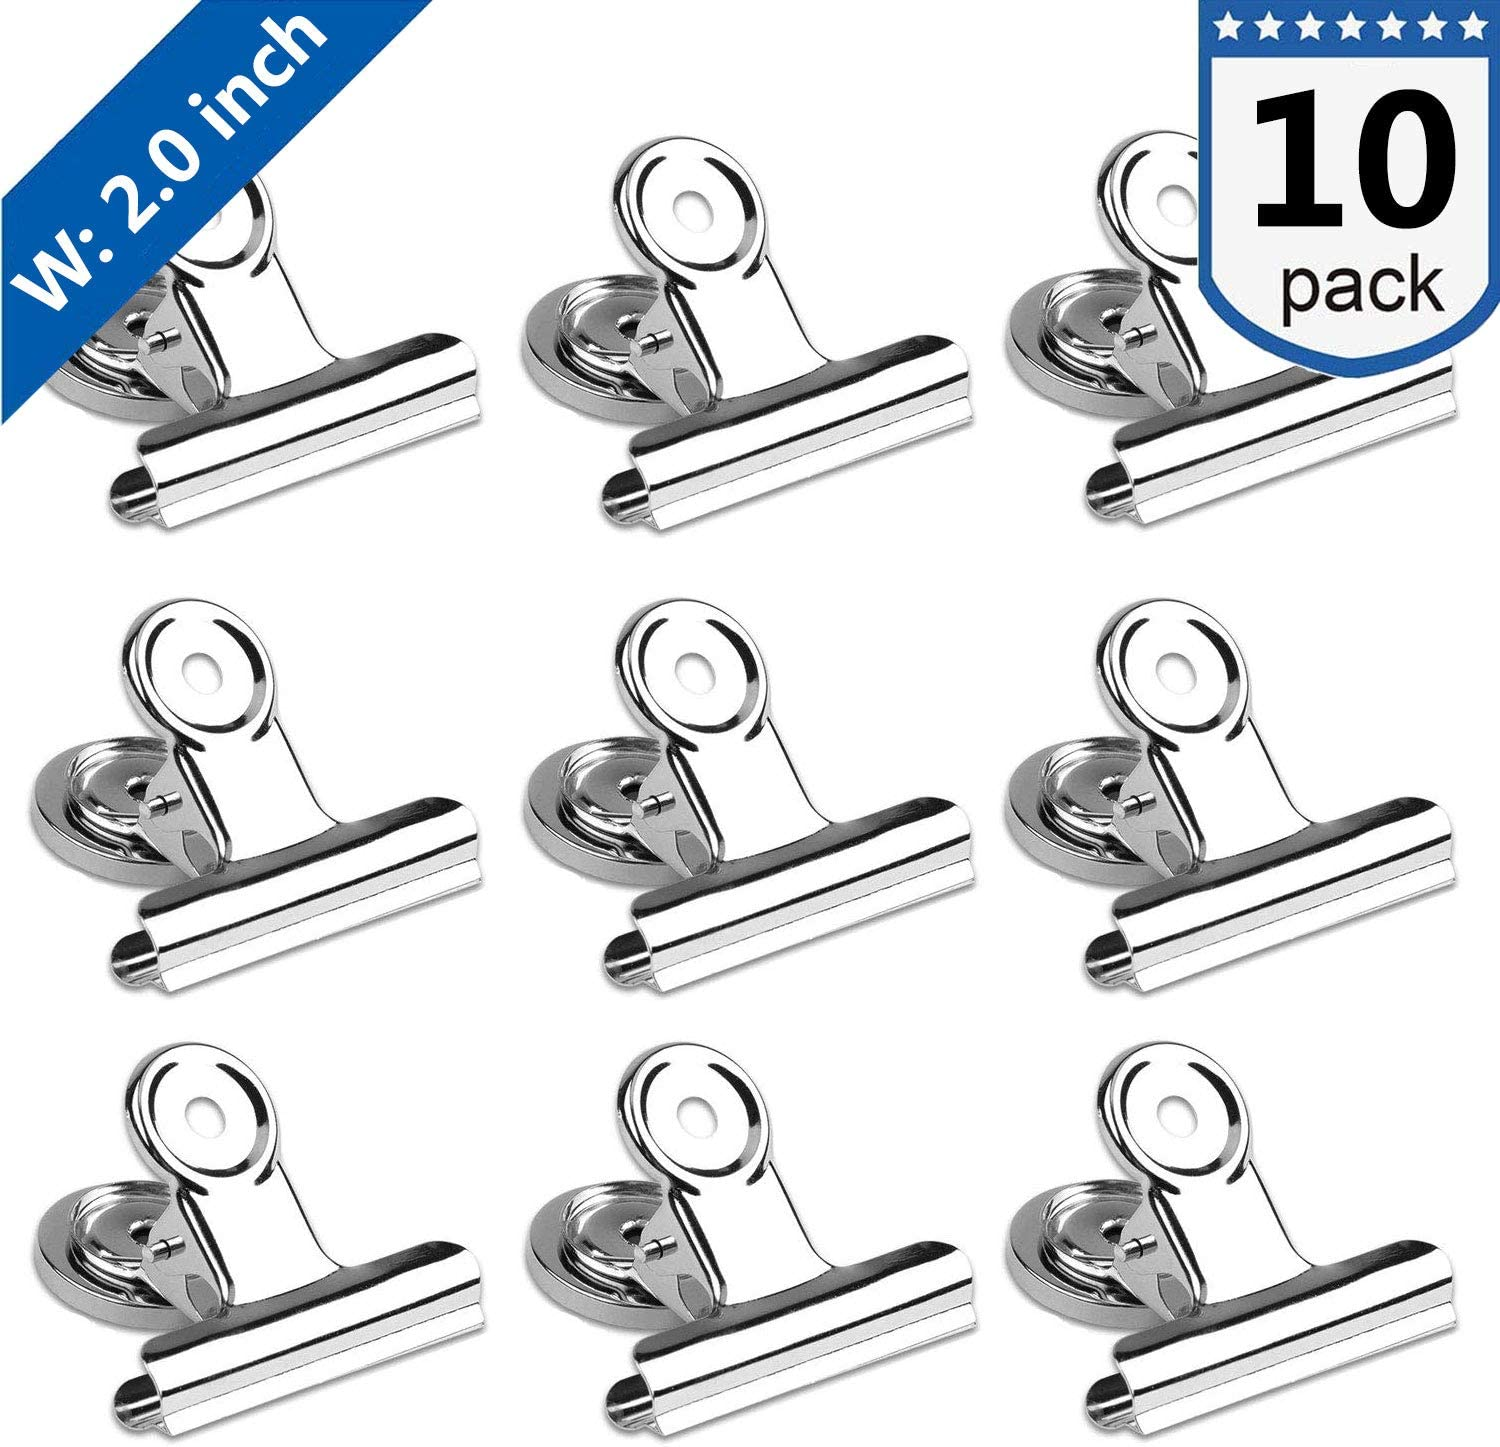 Magnetic Clips 2 inch, Heavy Duty Magnet Metal Clips for Refrigerator, 10 Pack Strong Magnet Clips for Cruise Cabins, Whiteboard, Fridge, Classroom